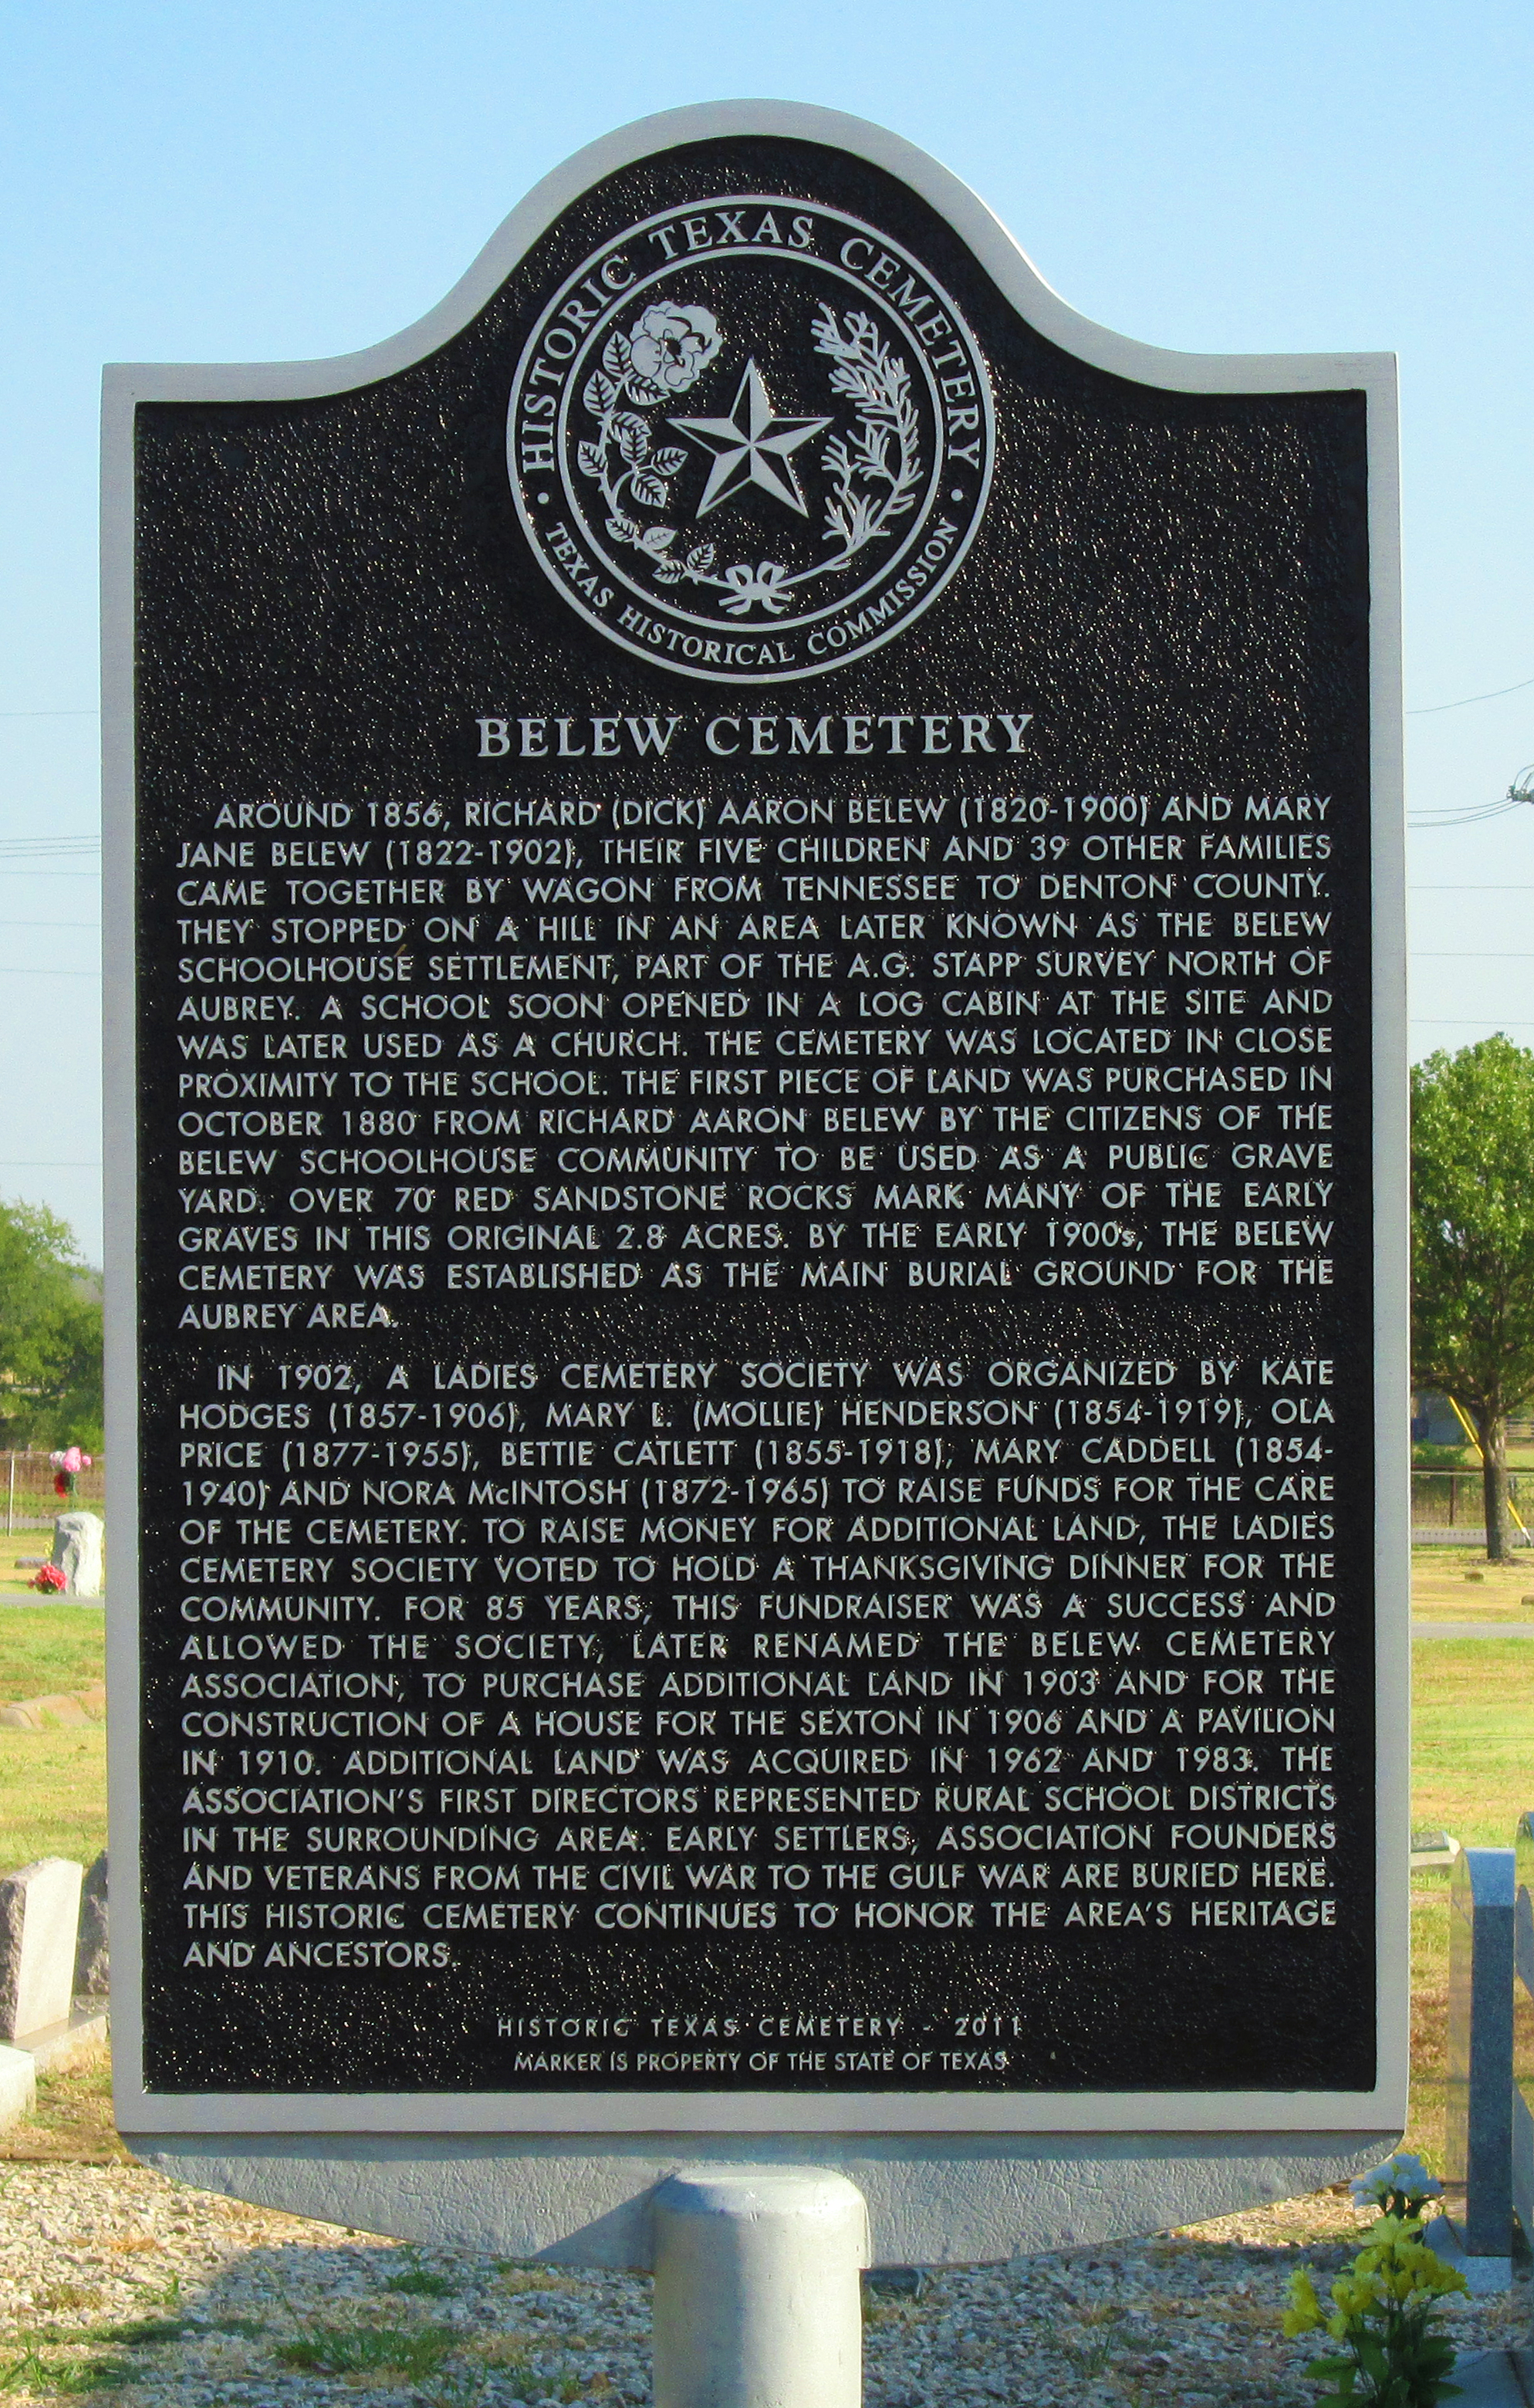 Belew Cemetery Historical Marker